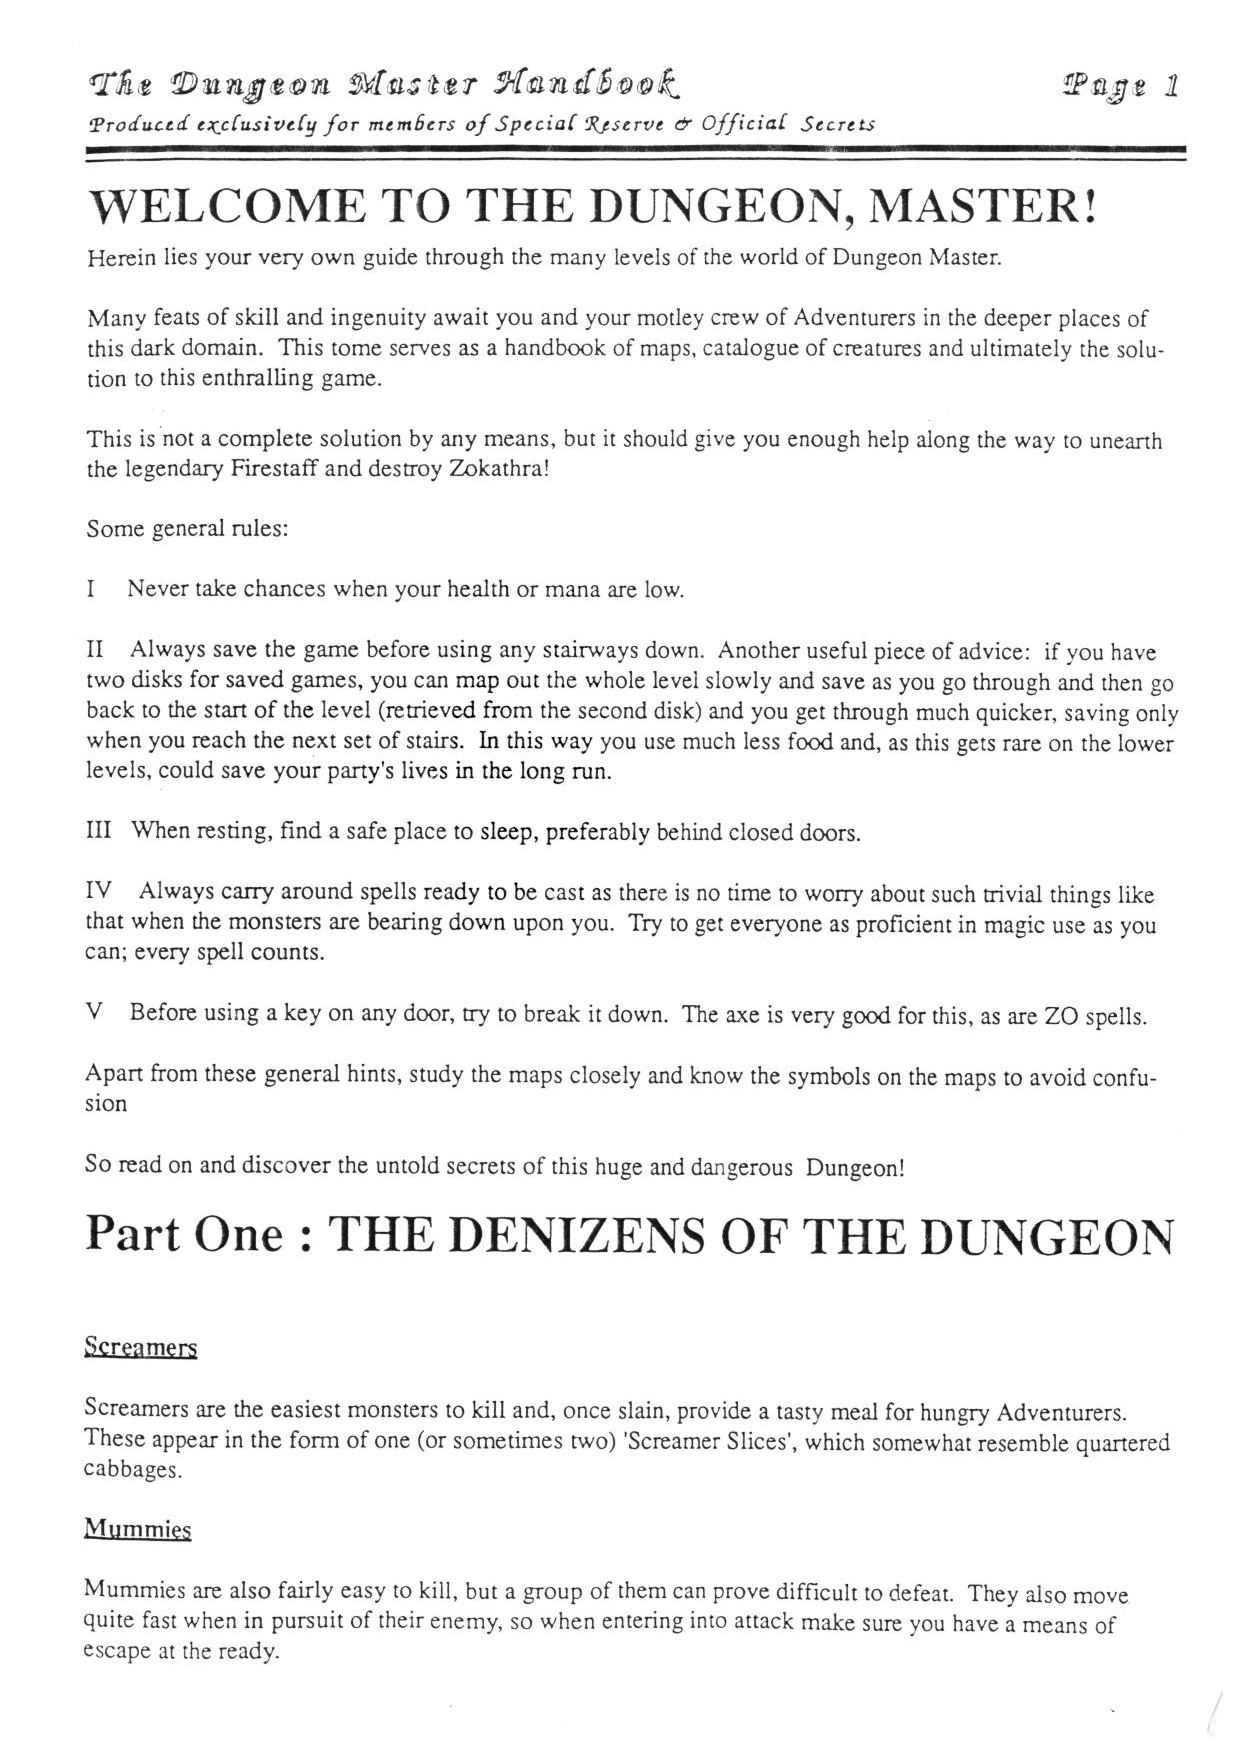 Hint Book - The Dungeon Master HandBook - UK - Page 002 - Scan